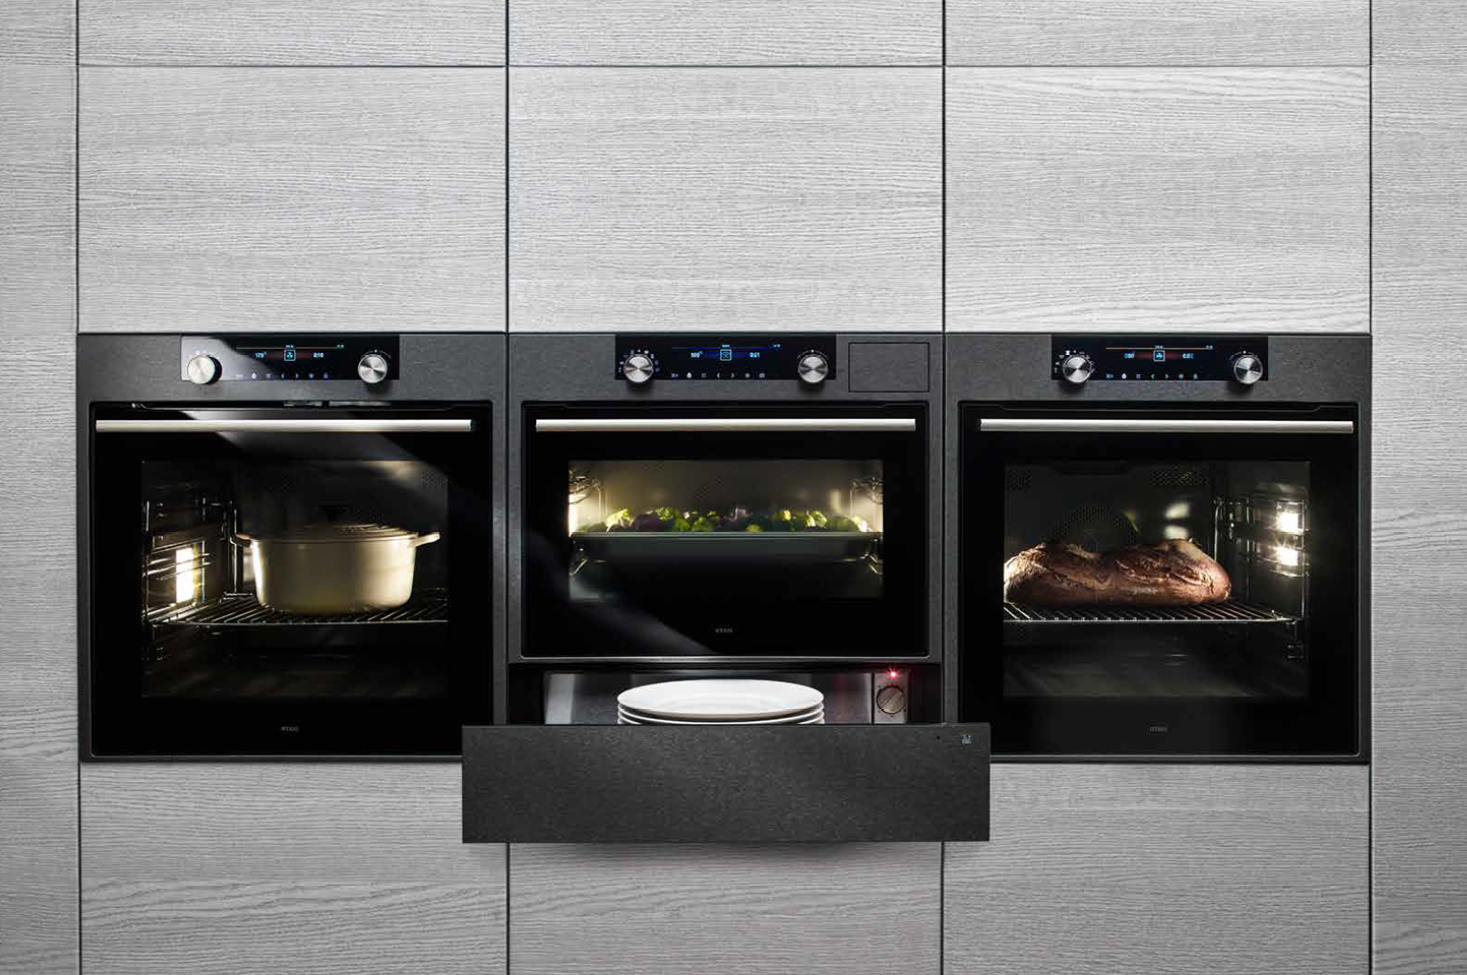 3-in-1 oven